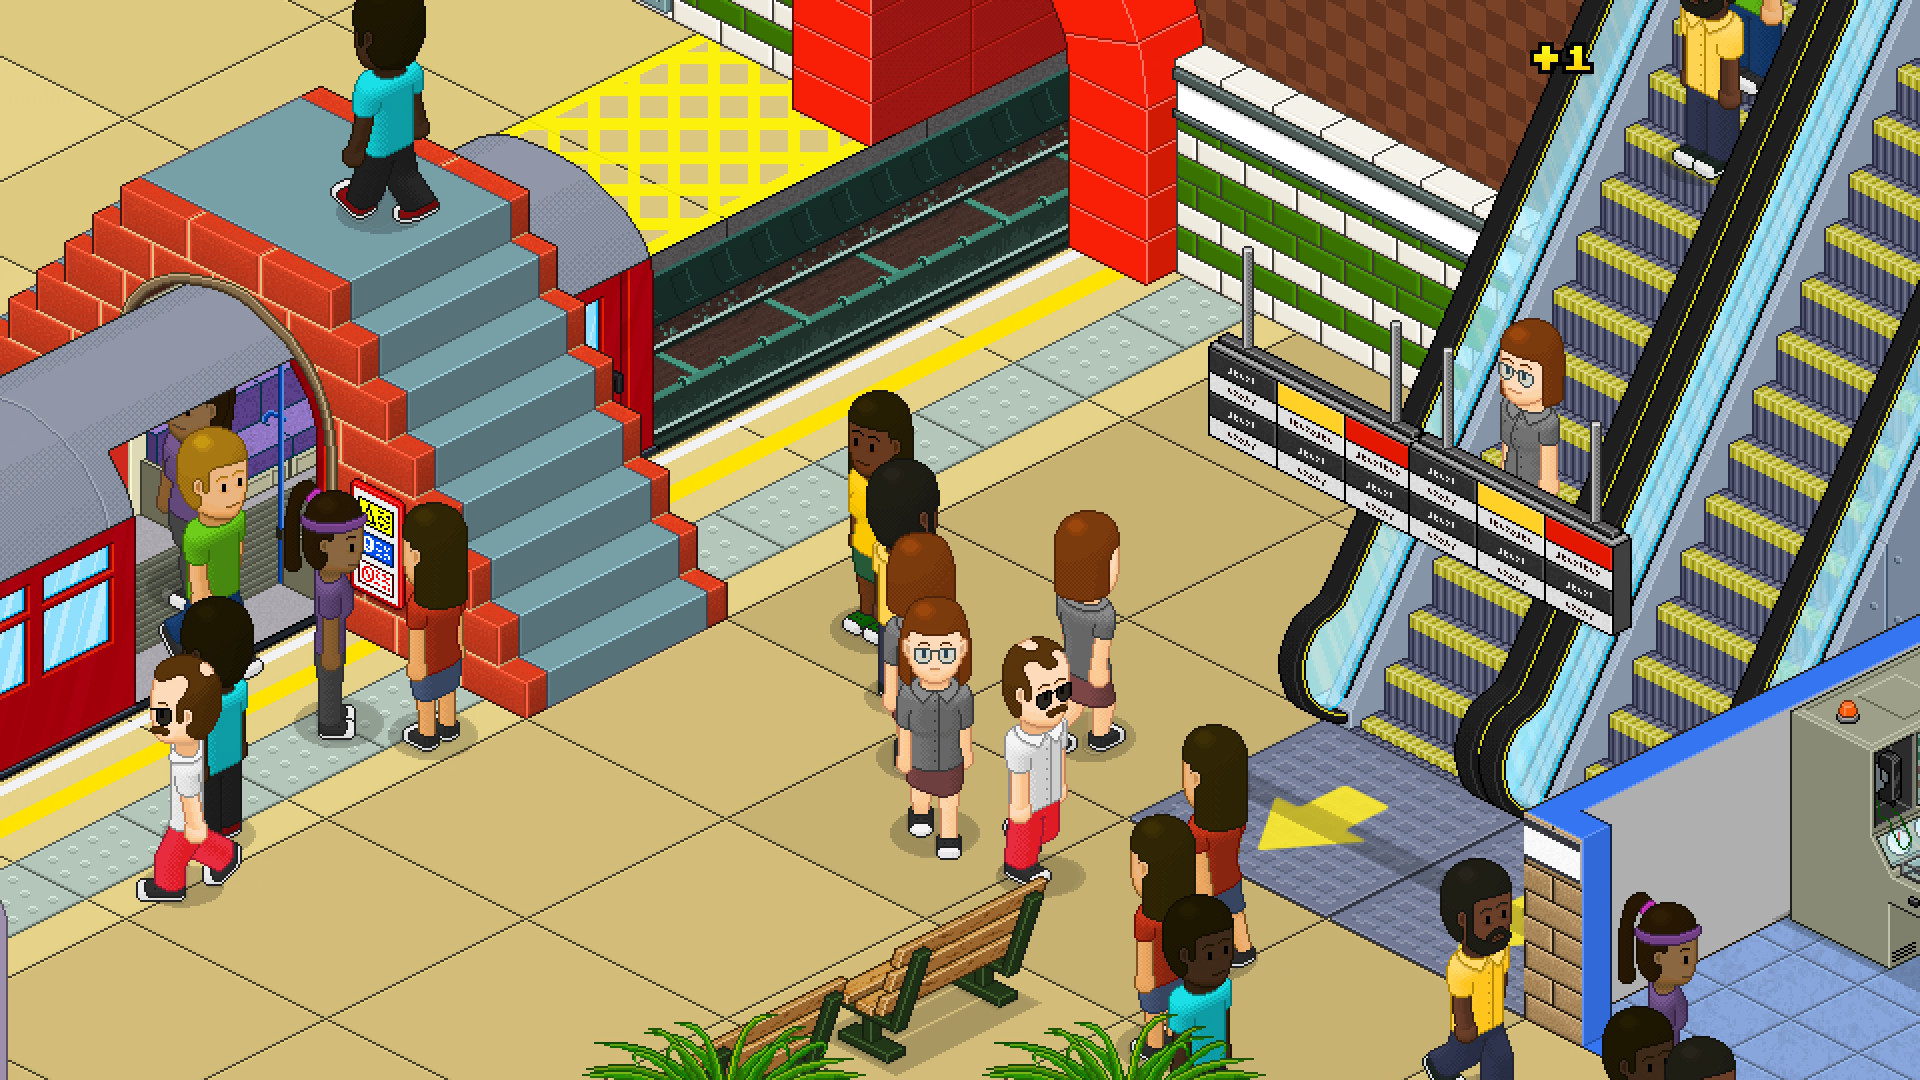 Overcrowd Released, Train Station Design Simulator That Will Change The Way You See The Transit System